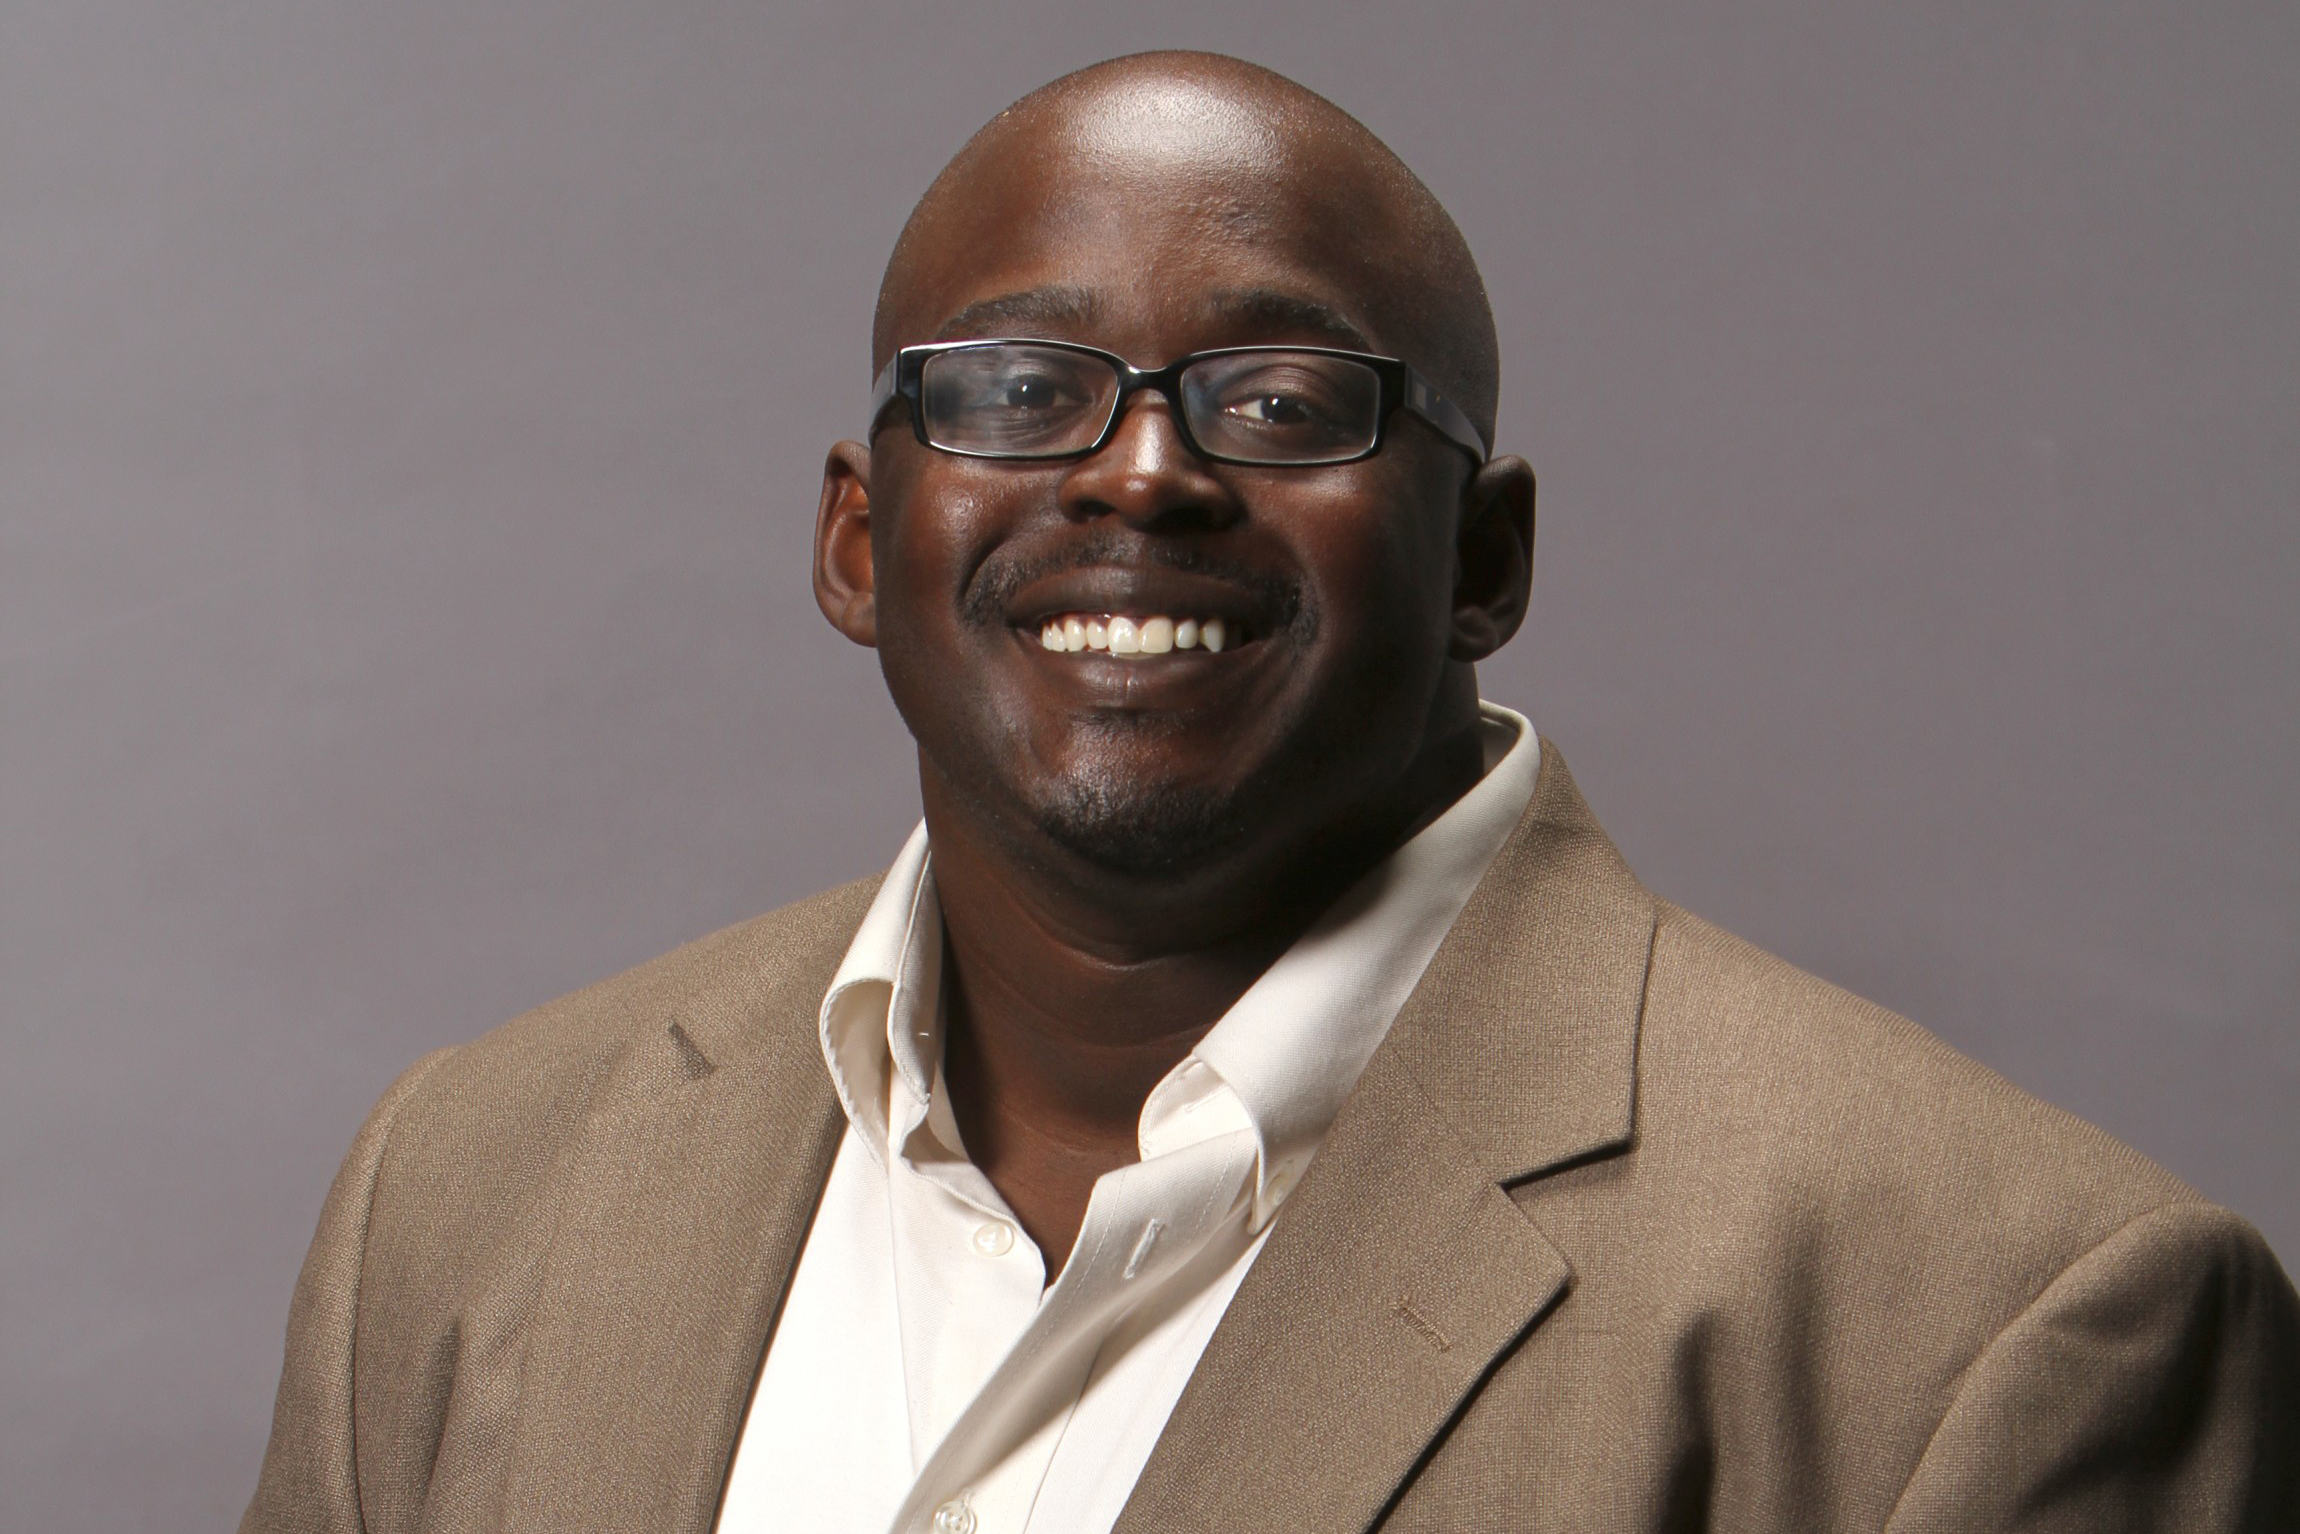 Yahoo Sports National NFL Writer Terez Paylor Dies Unexpectedly at the Age of 37